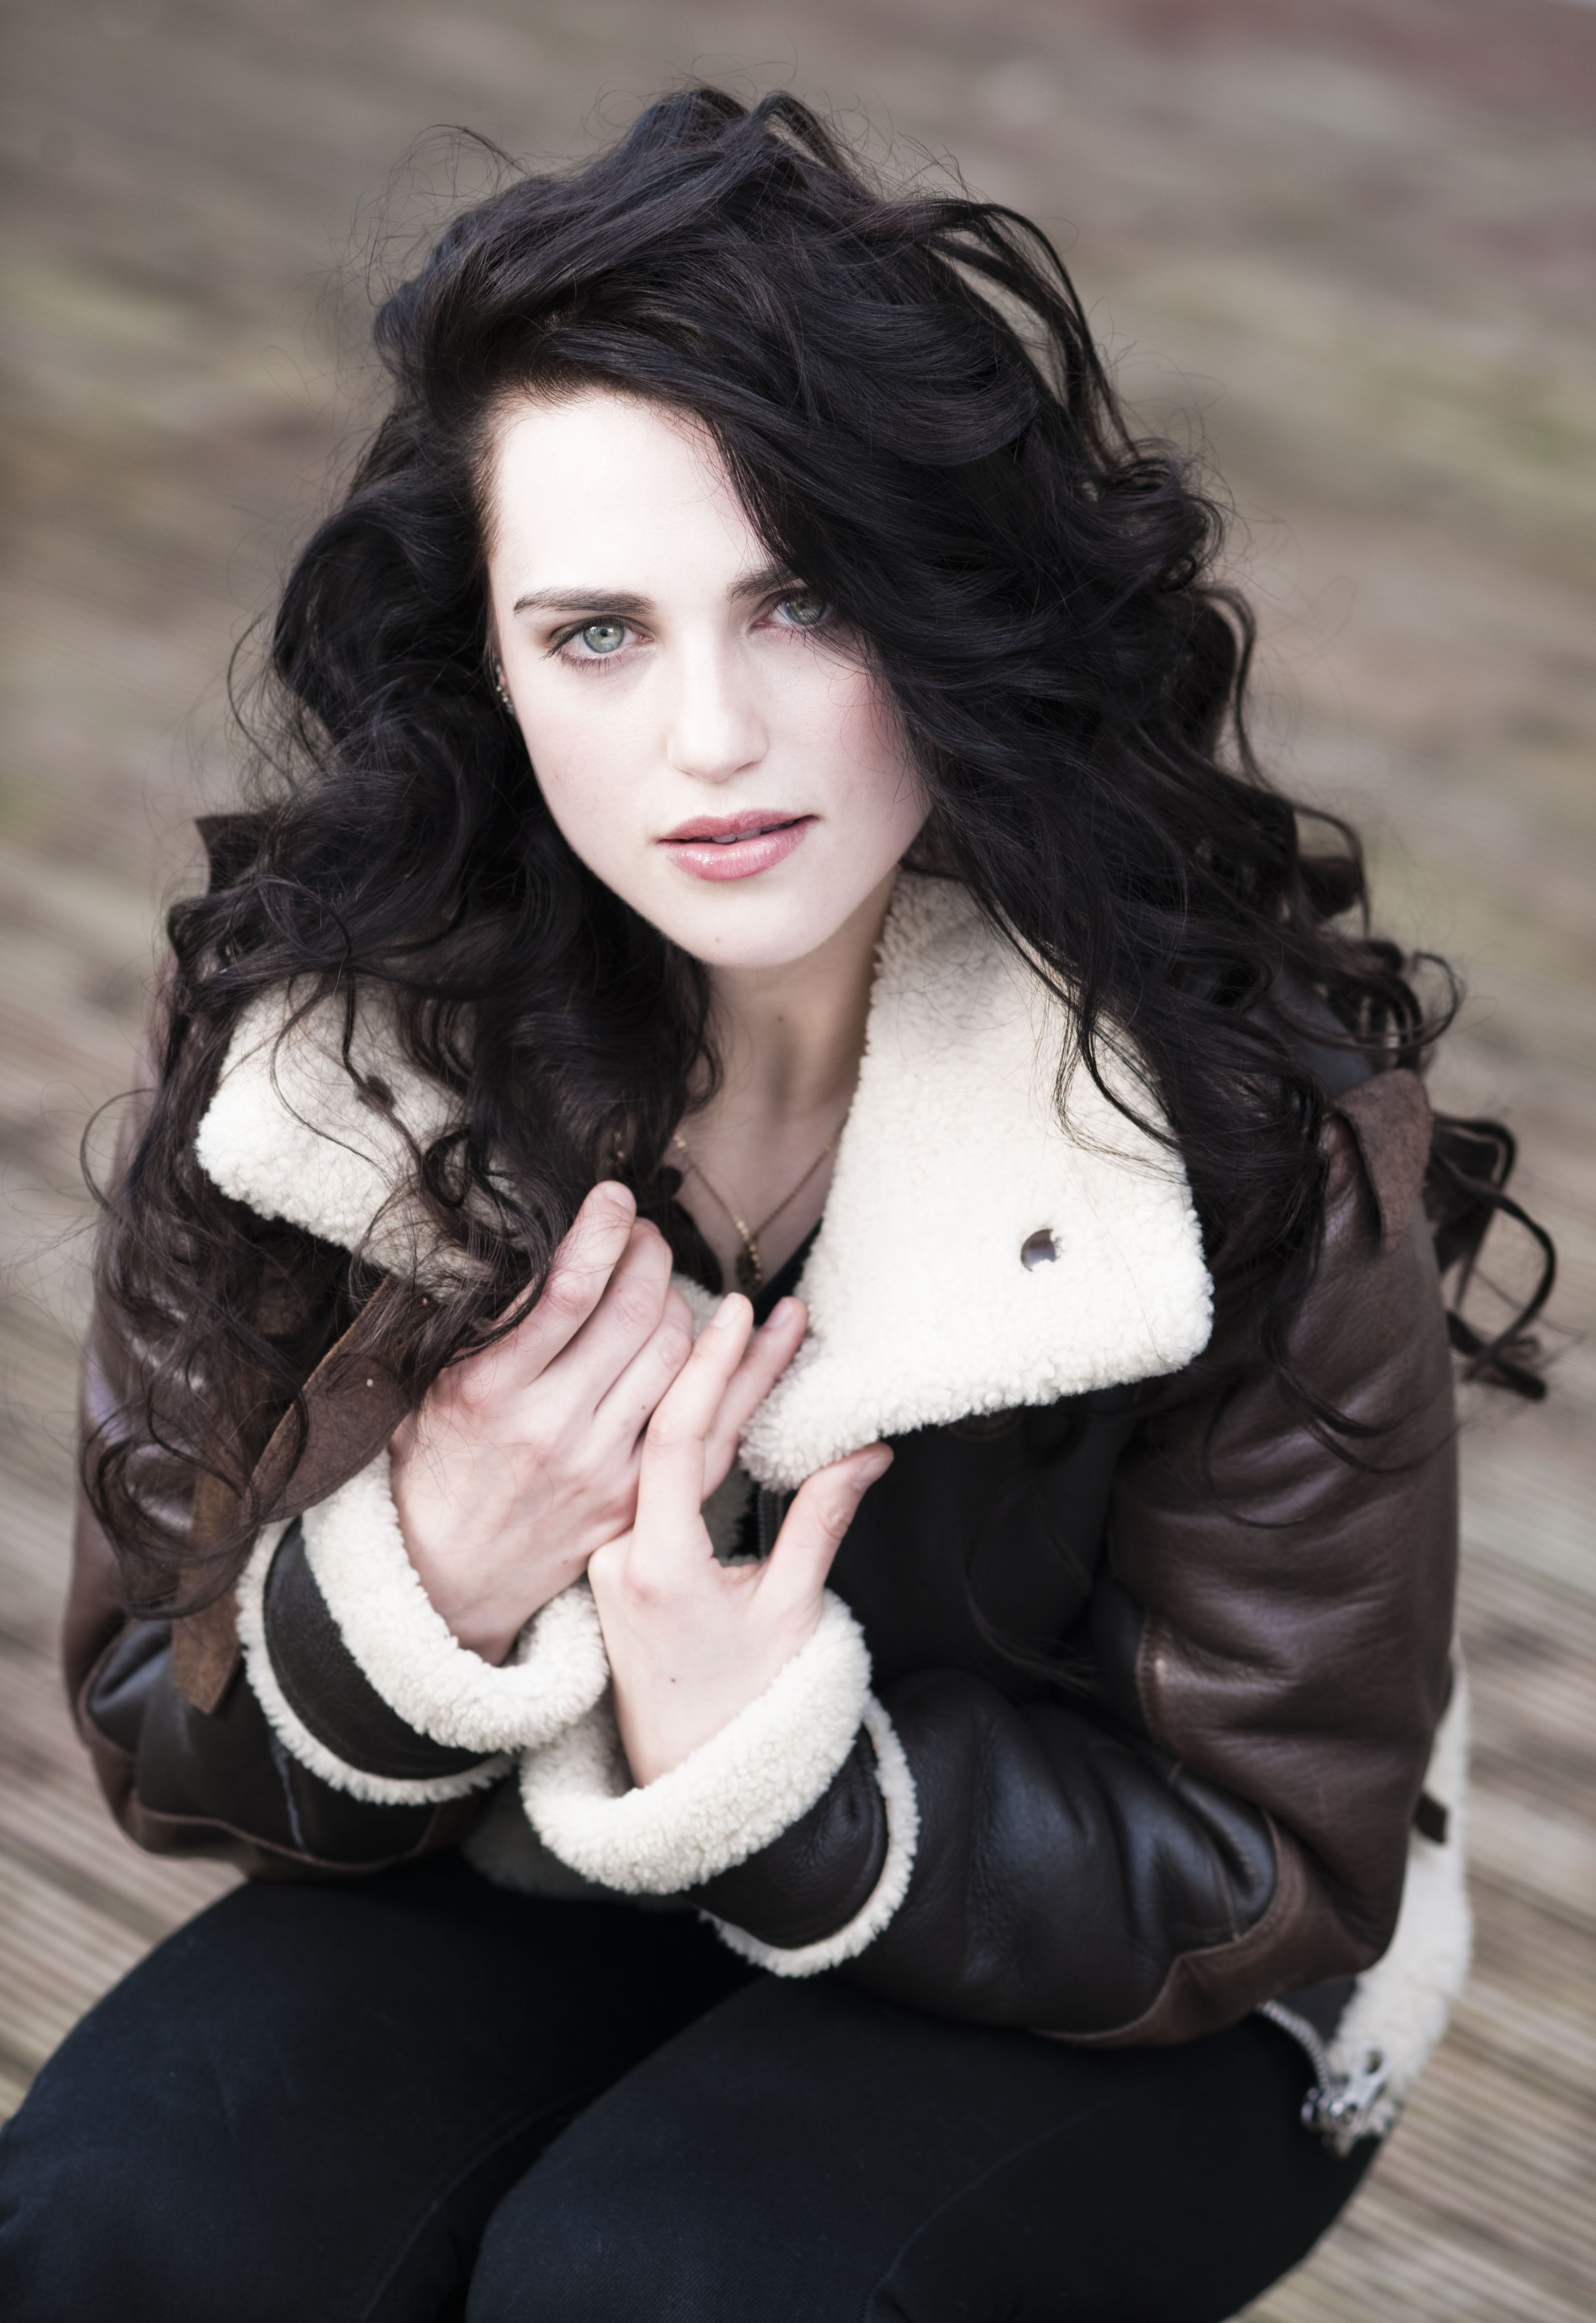 Another possibility for R-beautiful Katie McGrath